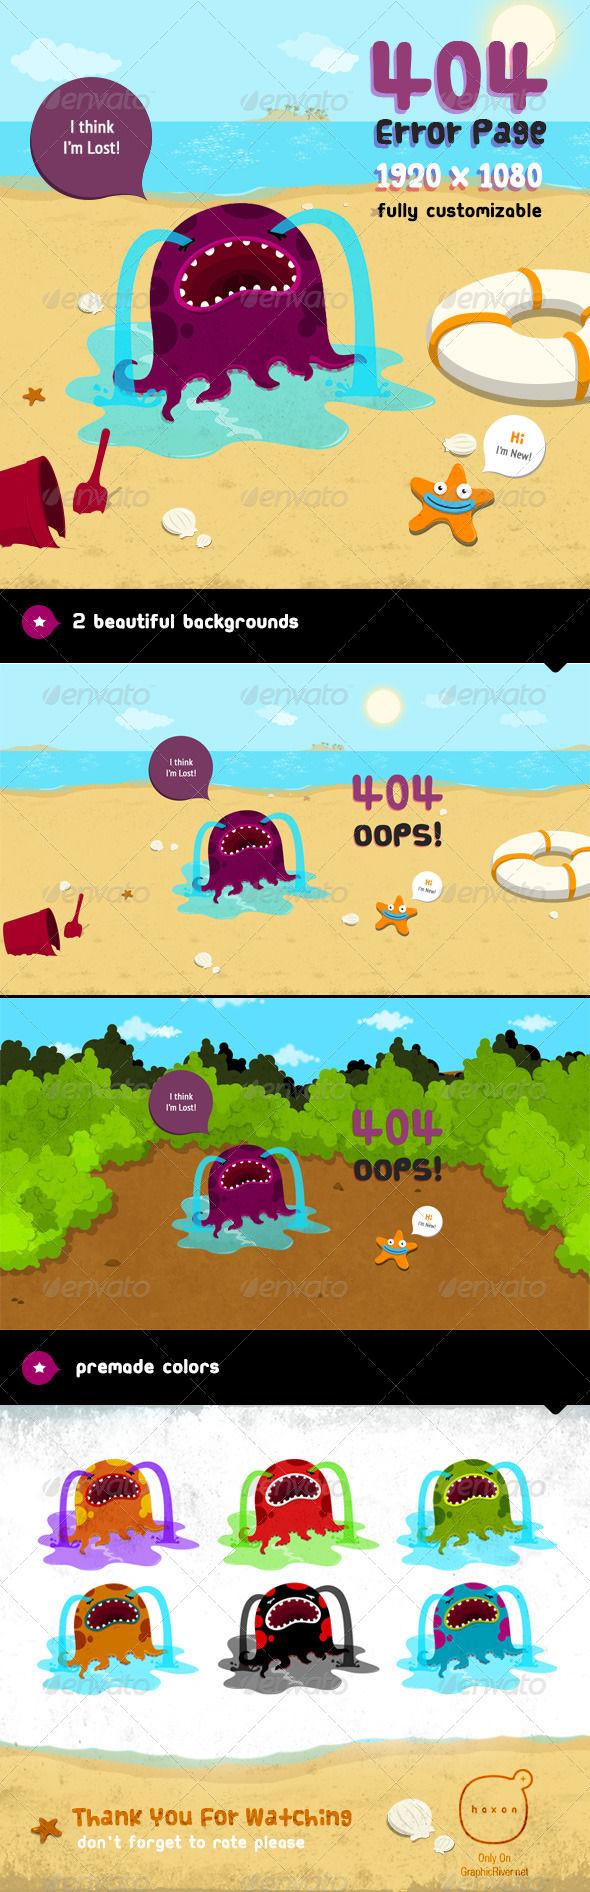 Lost by AddtoFavorites (layered 404 page template)